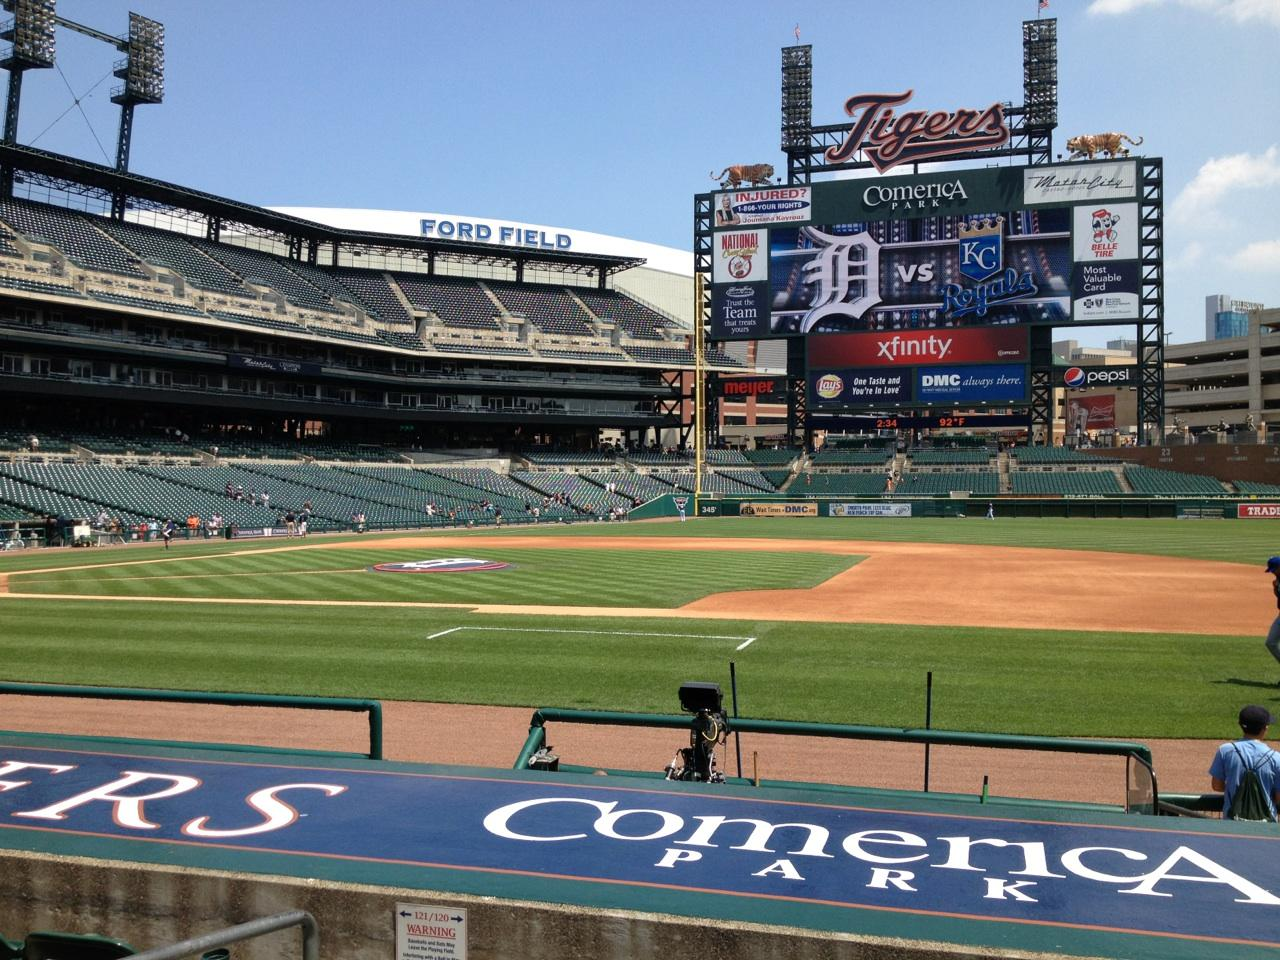 Pin detroit tigers comerica park photo mural wallpaper on for Comerica park wall mural